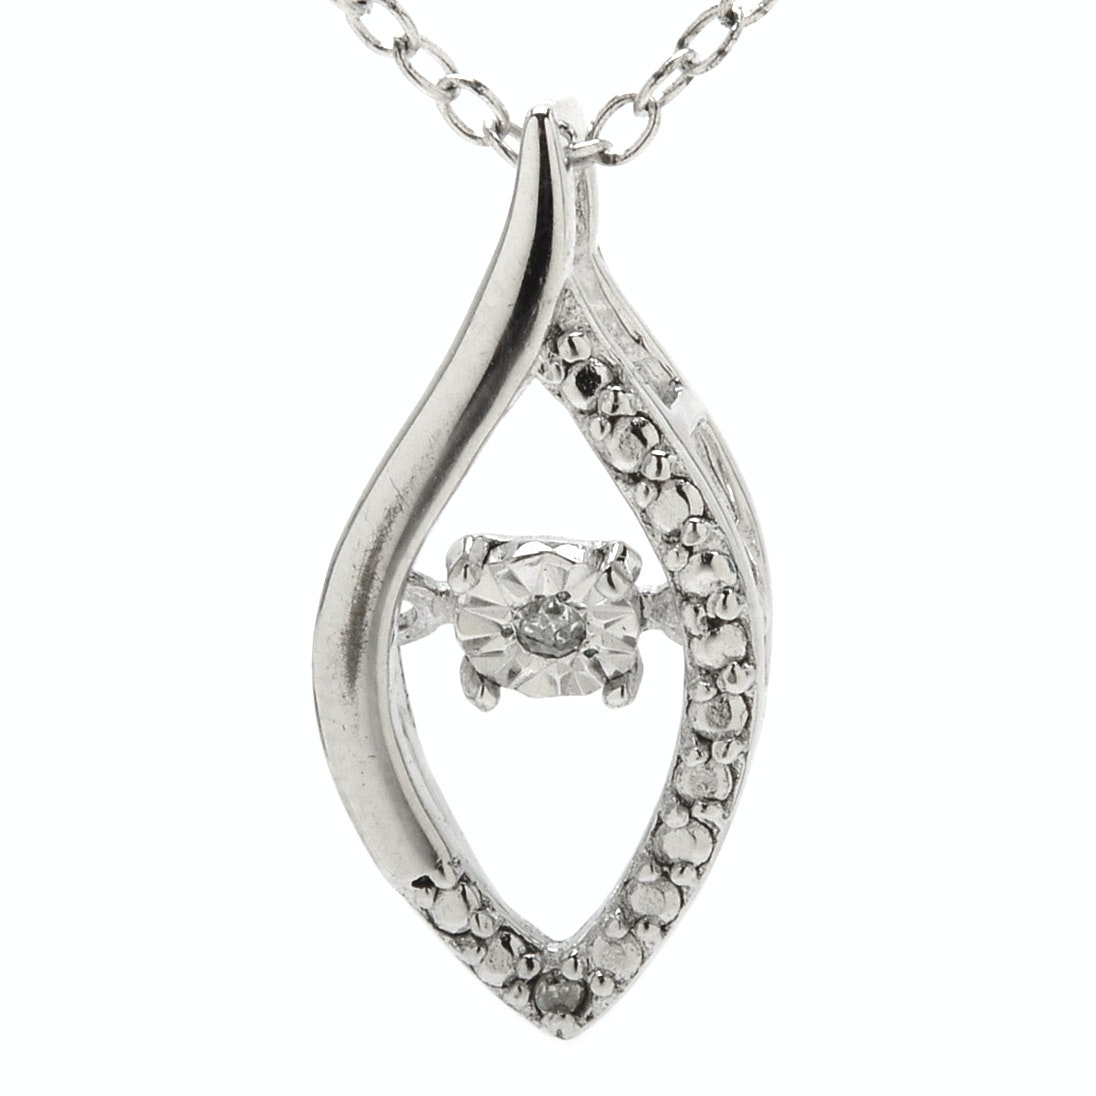 Sterling Silver Floating Diamond Pendant Necklace